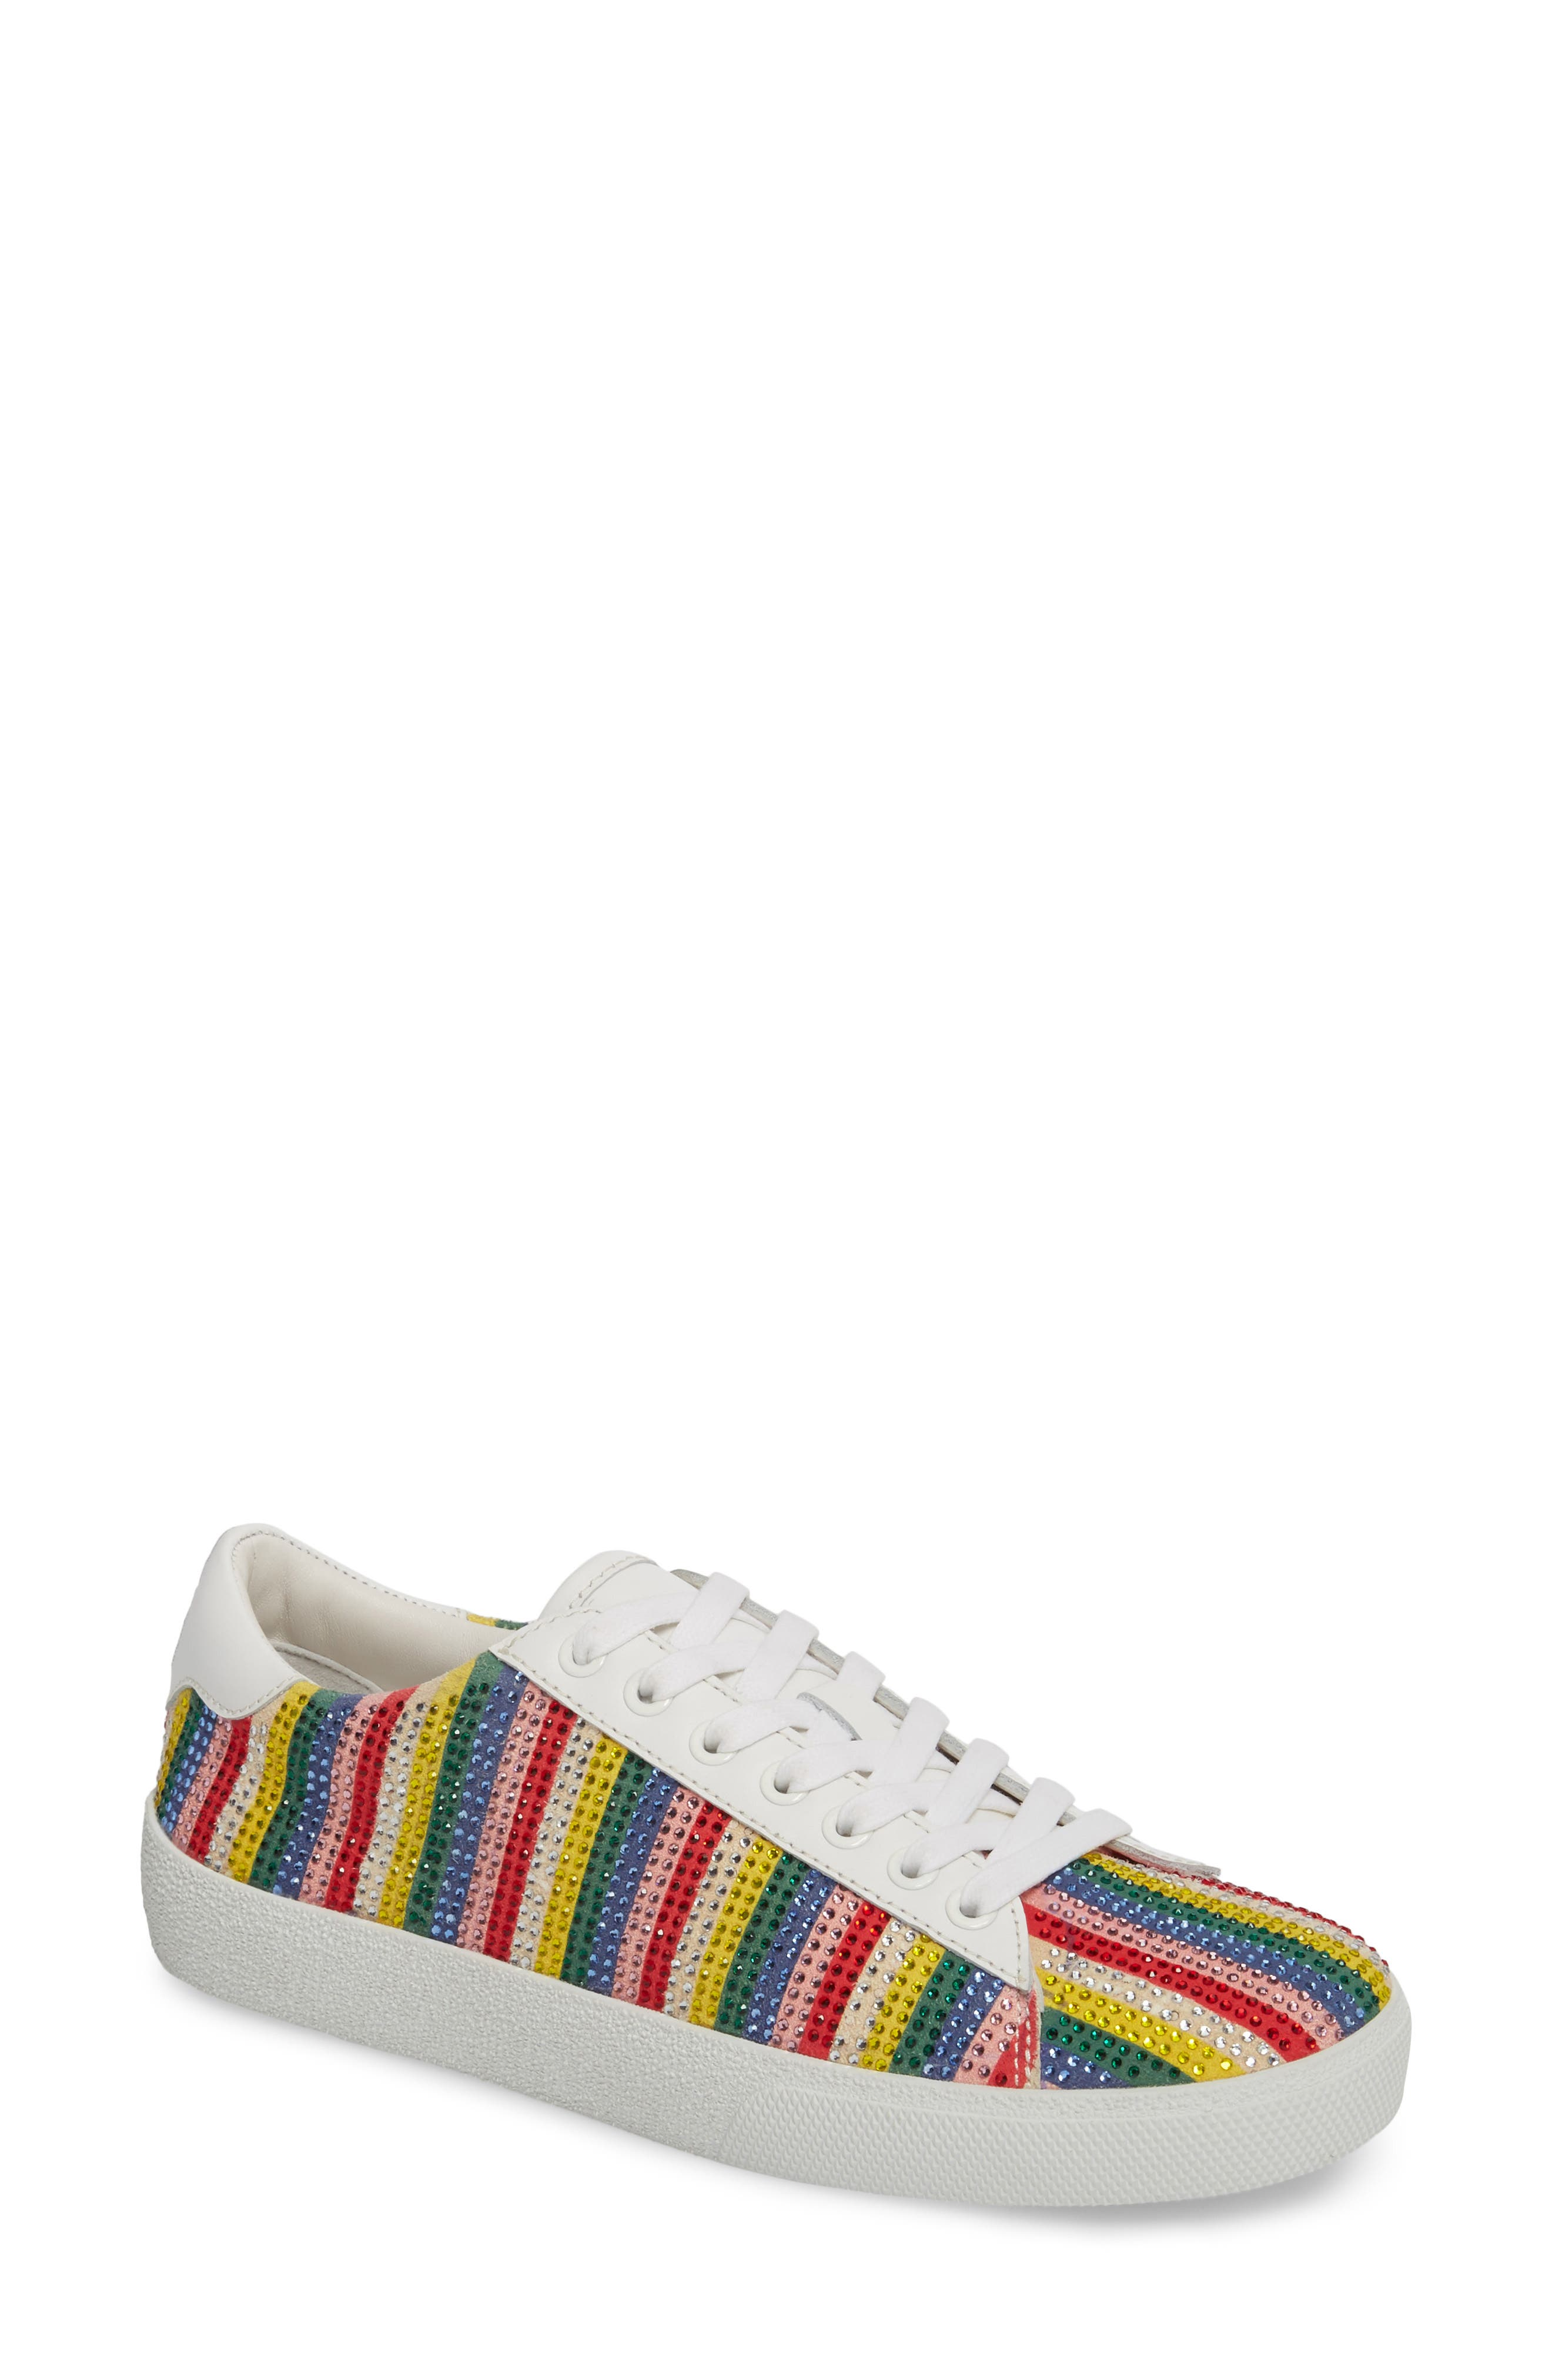 Cassidy Crystal Embellished Sneaker,                             Main thumbnail 1, color,